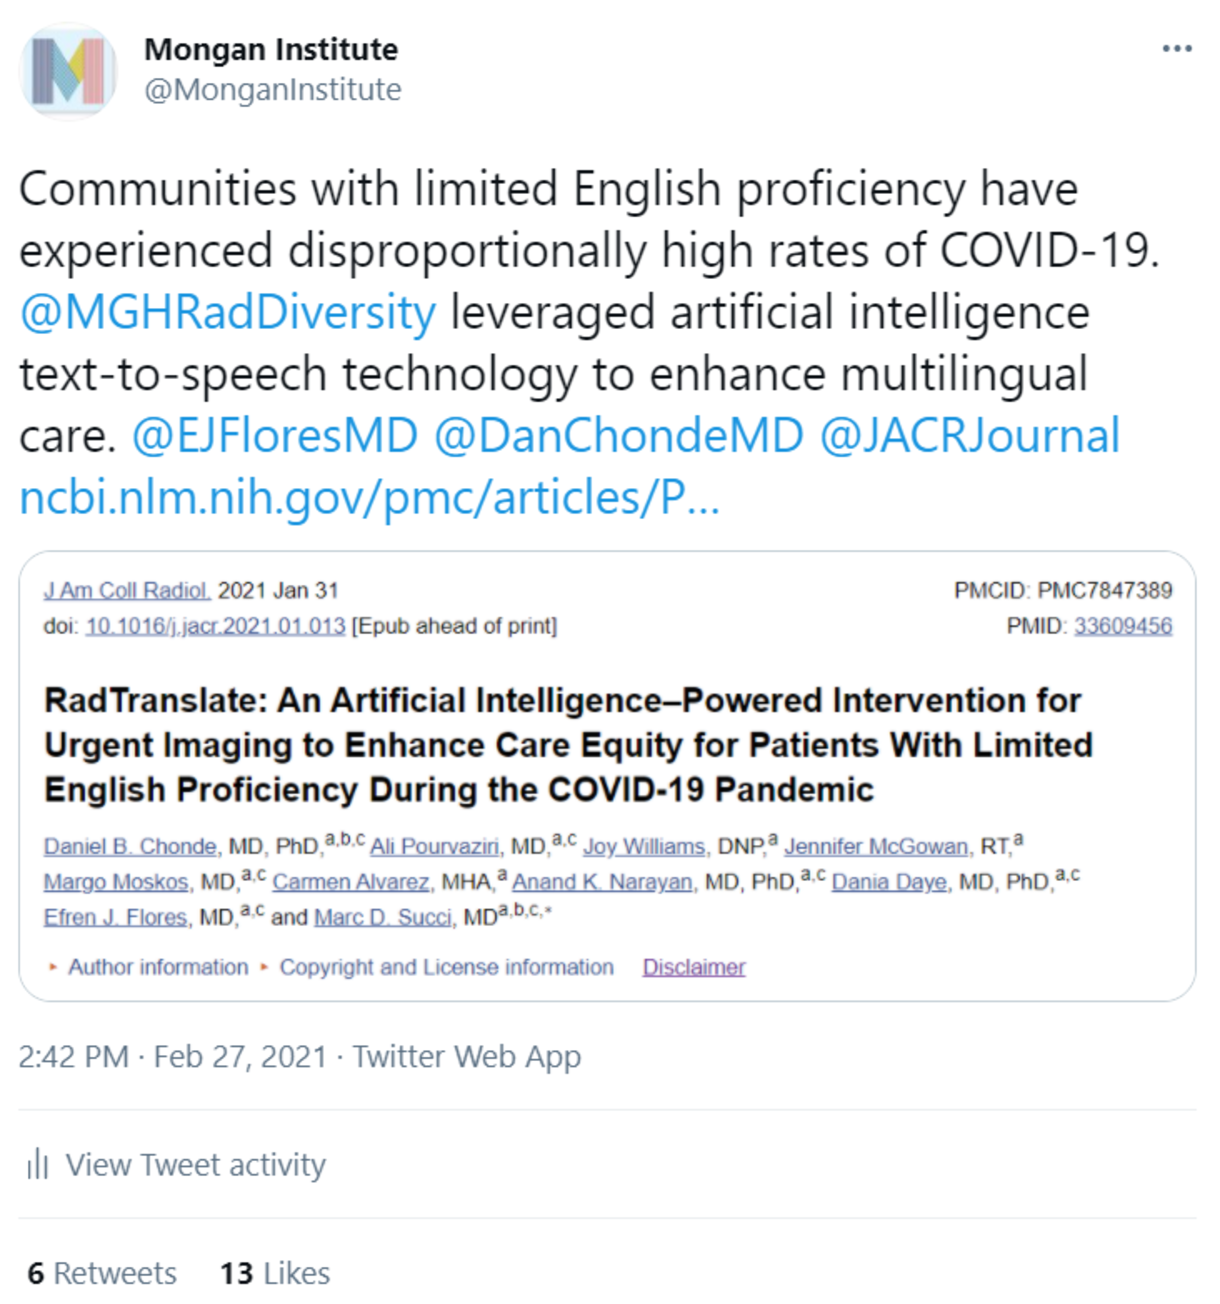 Tweet that reads:Communities with limited English proficiency have experienced disproportionally high rates of COVID-19. @MGHRadDiversity leveraged artificial intelligence text-to-speech technology to enhance multilingual care. @EJFloresMD @DanChondeMD @JACRJournal